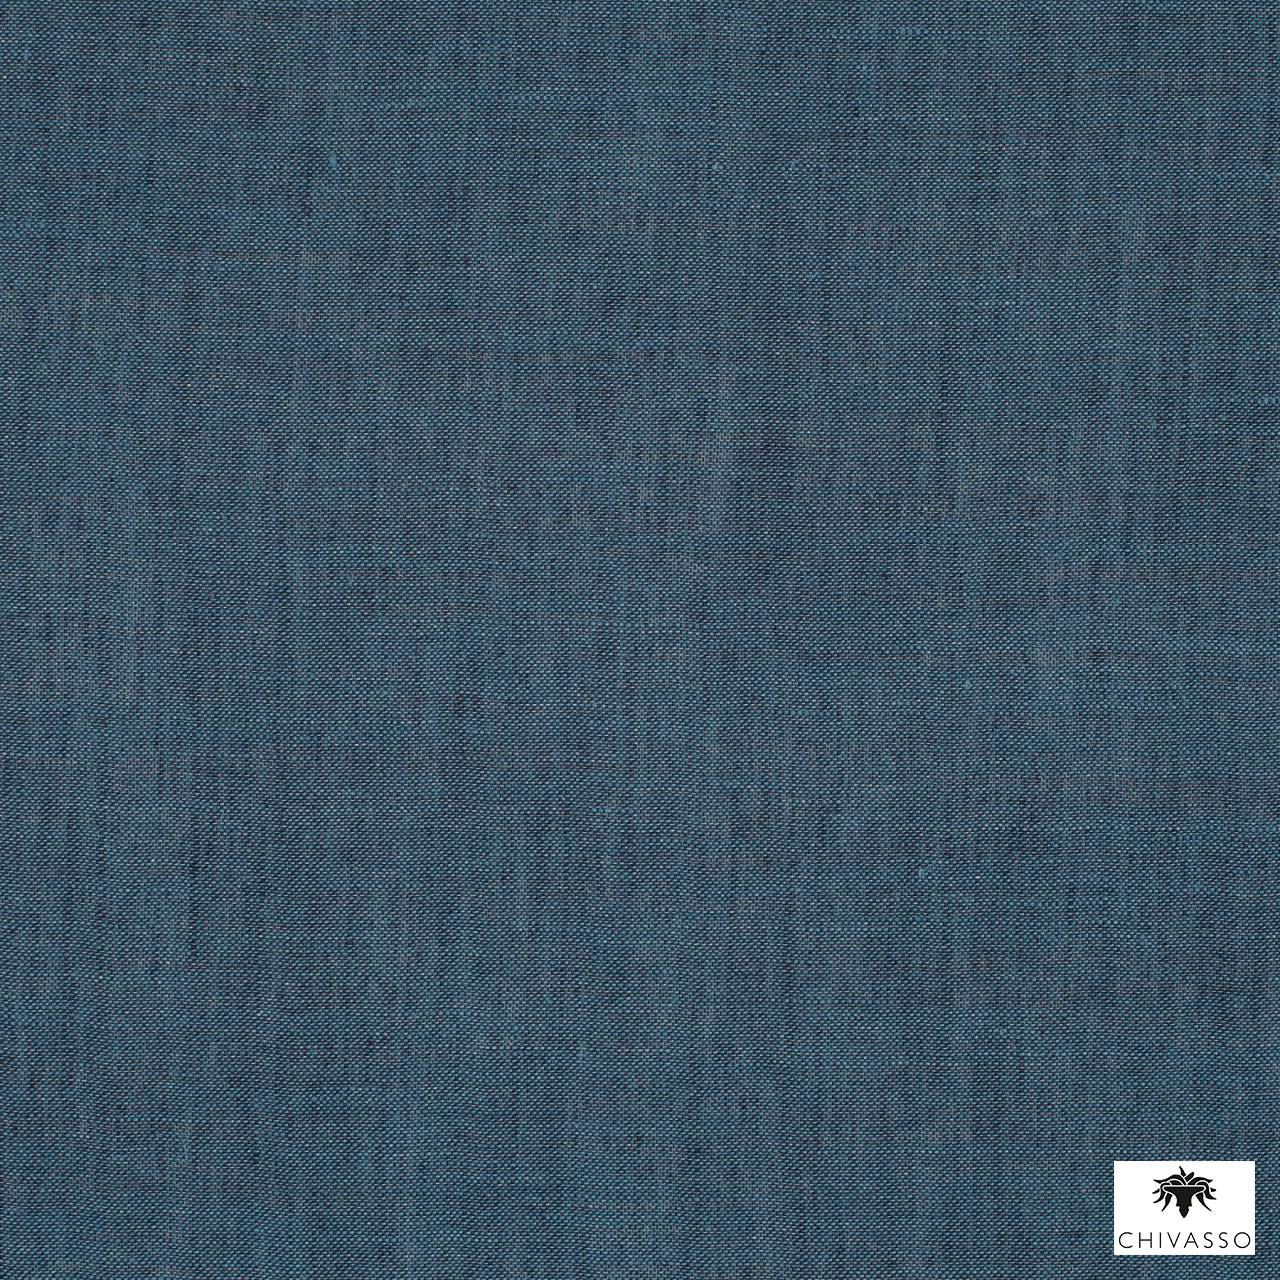 Chivasso - Vintage Soul - Ch2770-051  | Curtain Fabric - Blue, Plain, Natural Fibre, Domestic Use, Natural, Railroaded, Wide Width, Strie